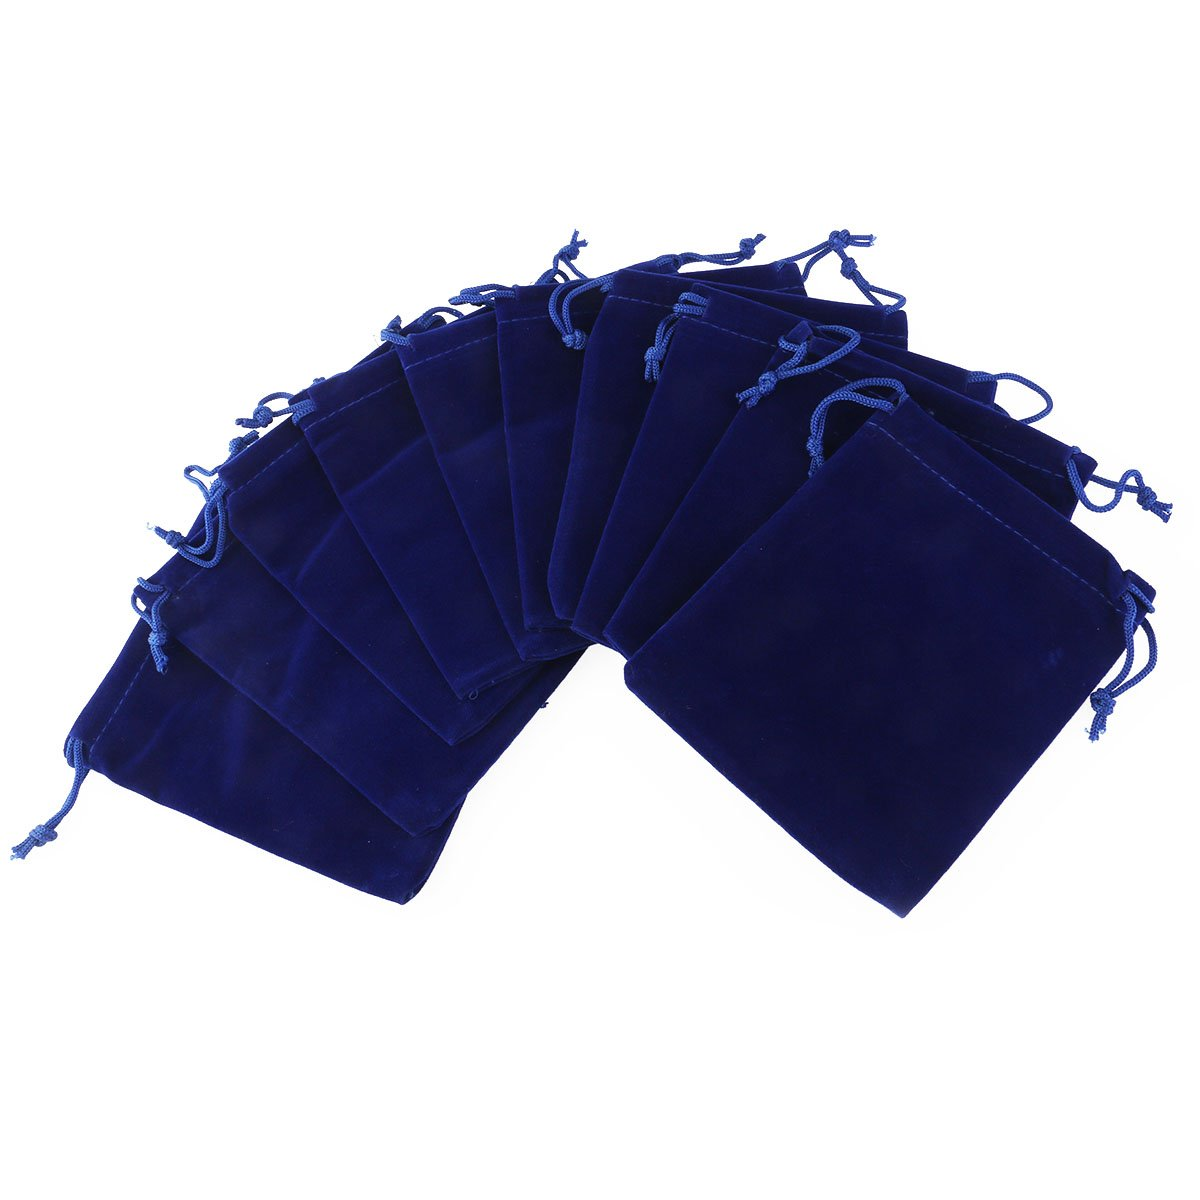 Wedding Favor Gift Bags Velvet Drawstring Candy Bags Jewelry Pouch Pack of 10 (Dark Blue) VORCOOL